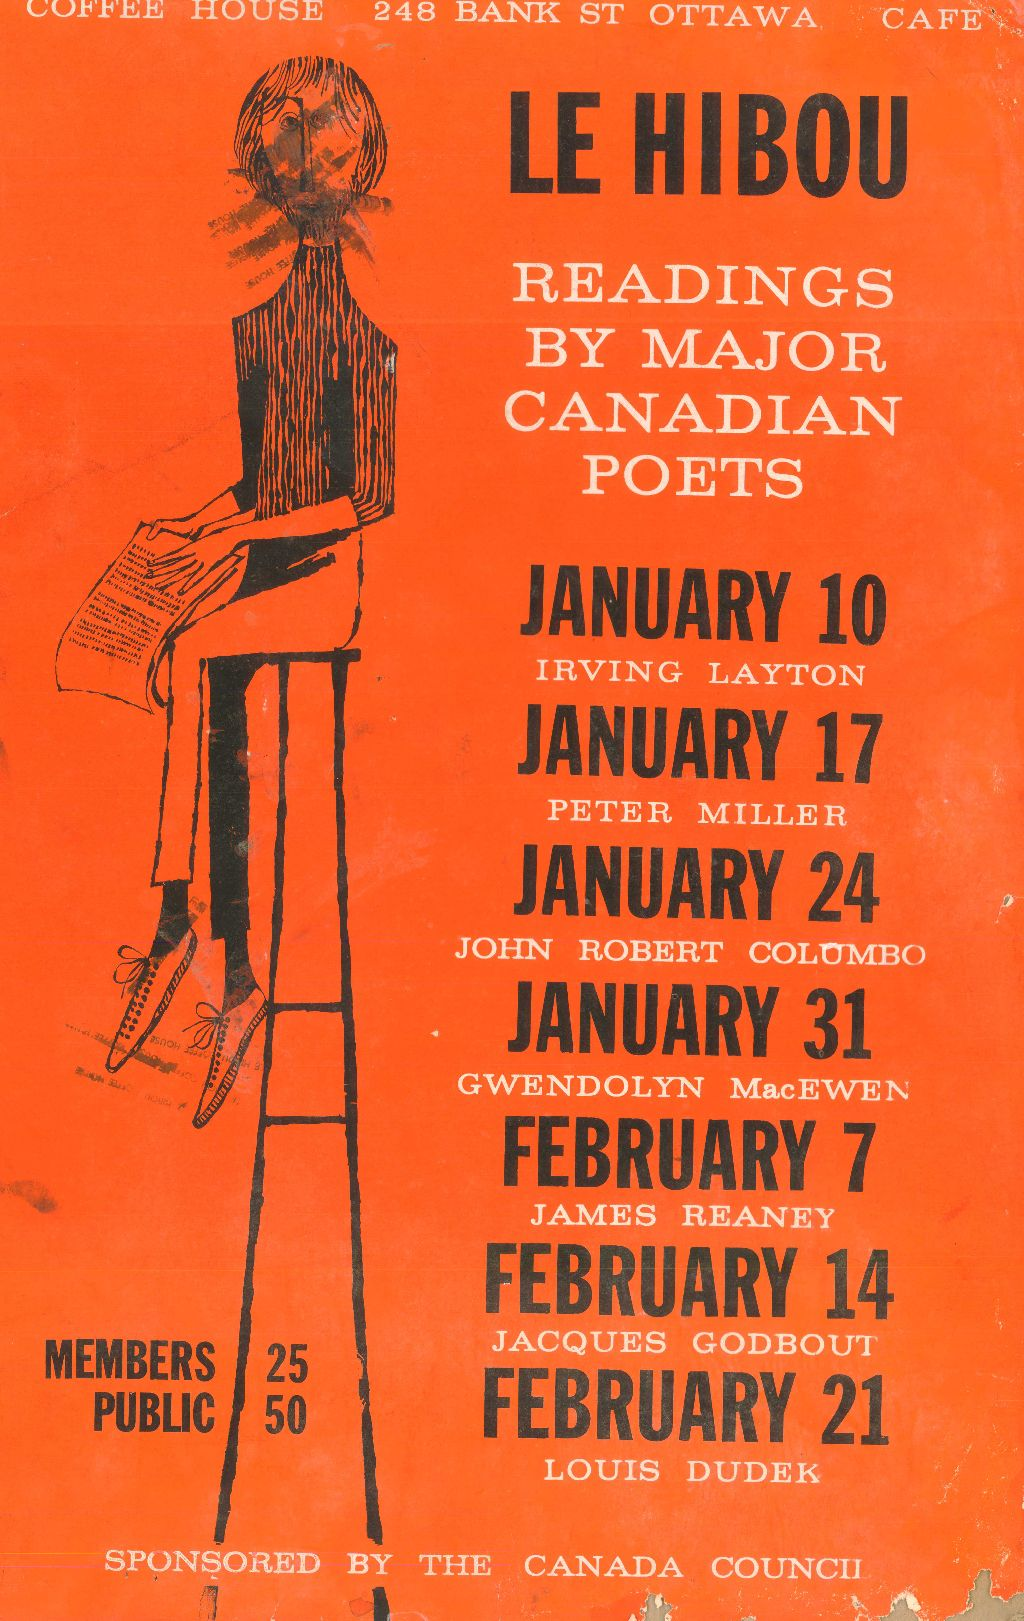 Readings by Major Canadian Poets